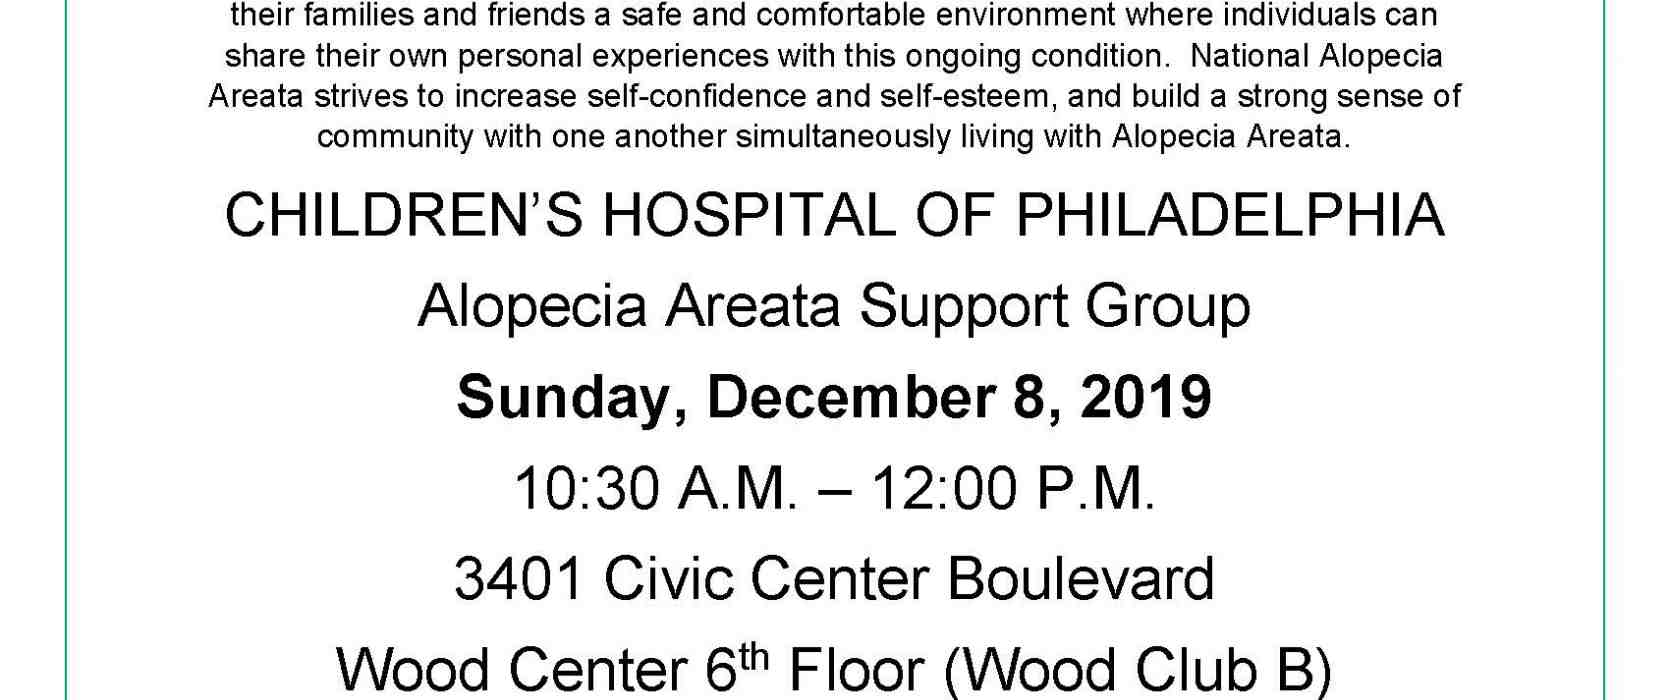 12-8-2019_alopecia_support_group_flyer_2019.jpg